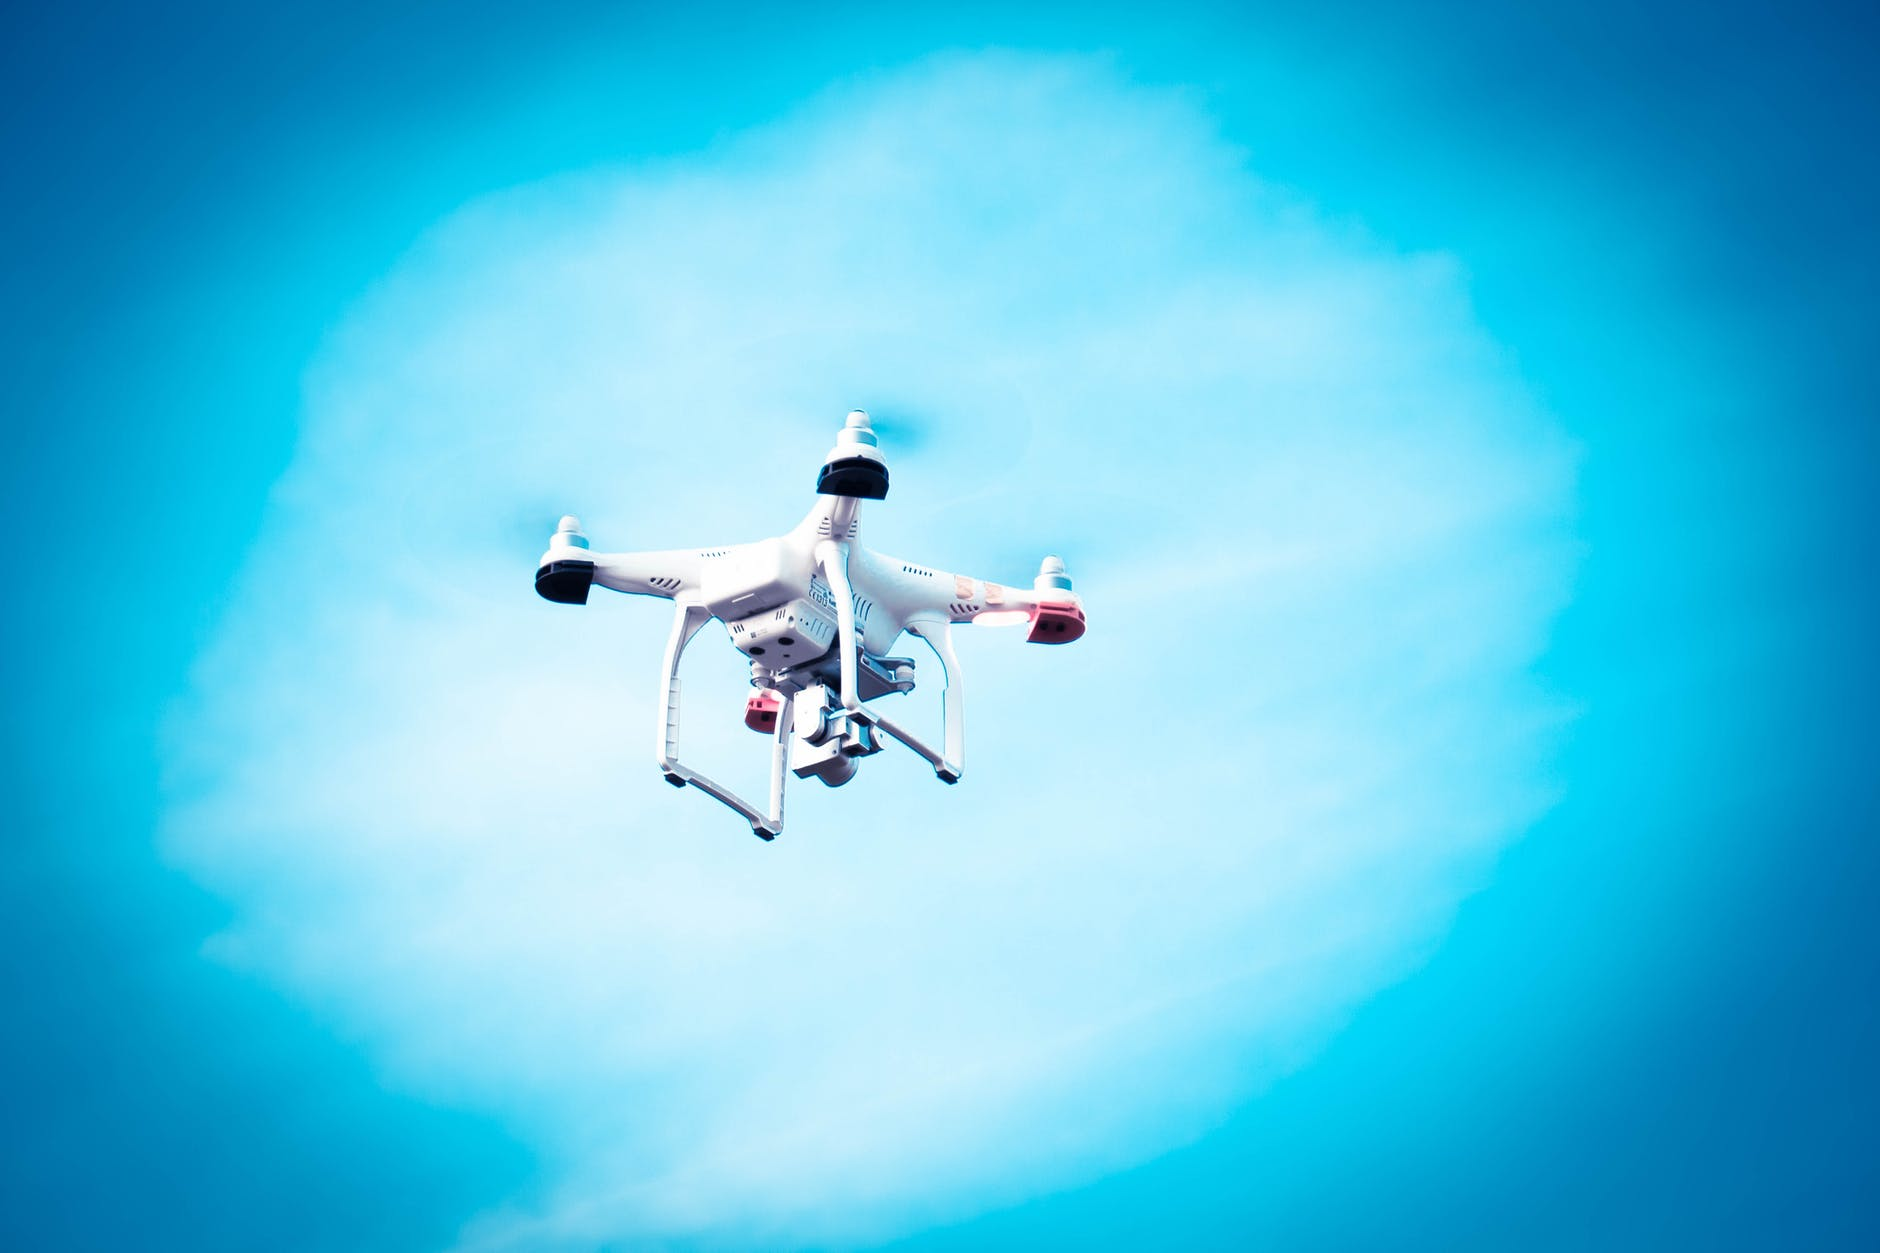 POS is No Fly Zone for Drones